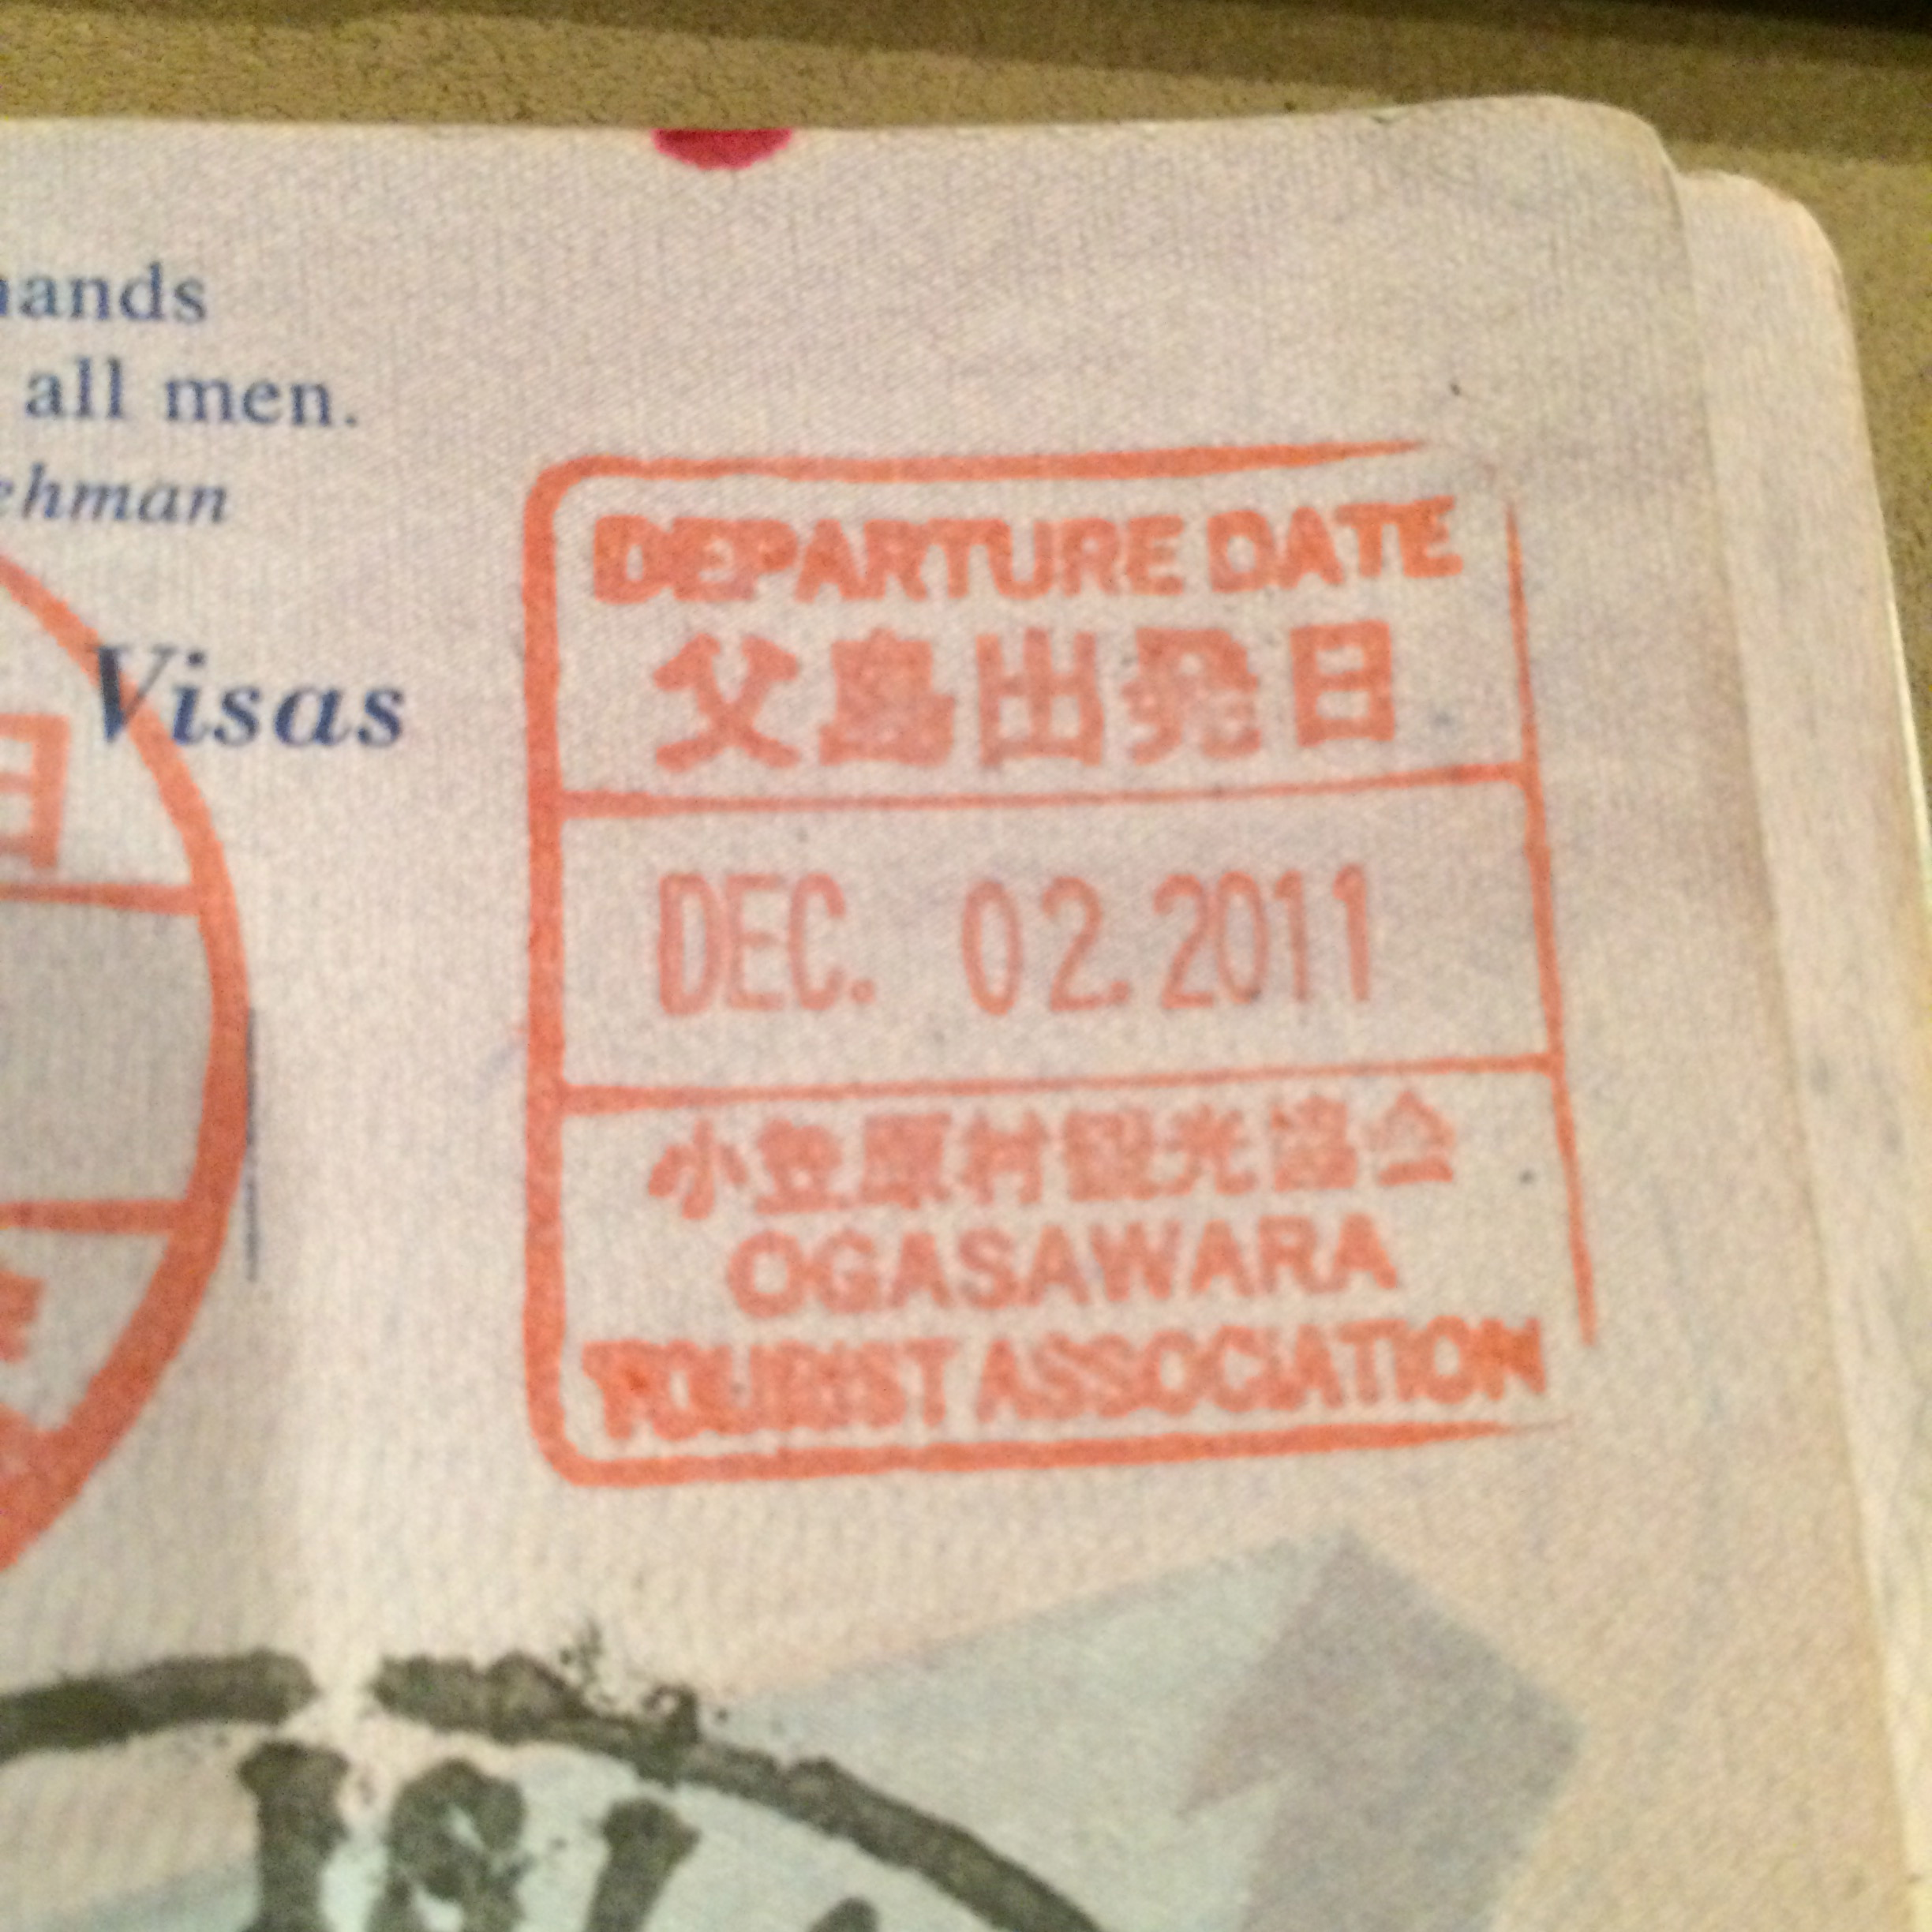 Ogasawara Japan Passport Stamp